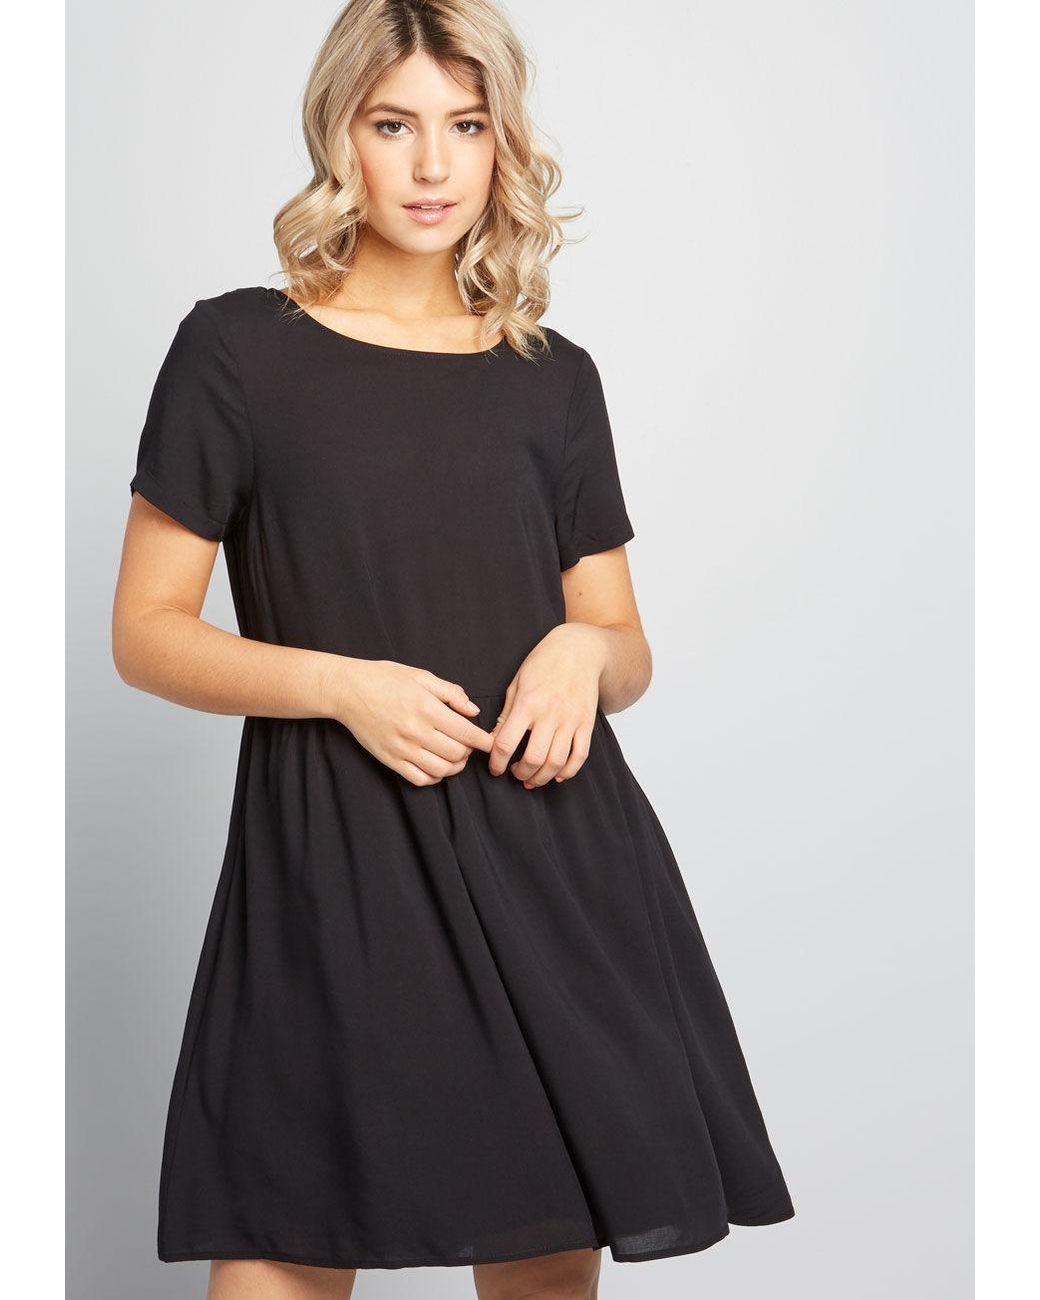 4871a31b3fba2 ModCloth Sway Into Style Babydoll Dress in Black - Save 63% - Lyst